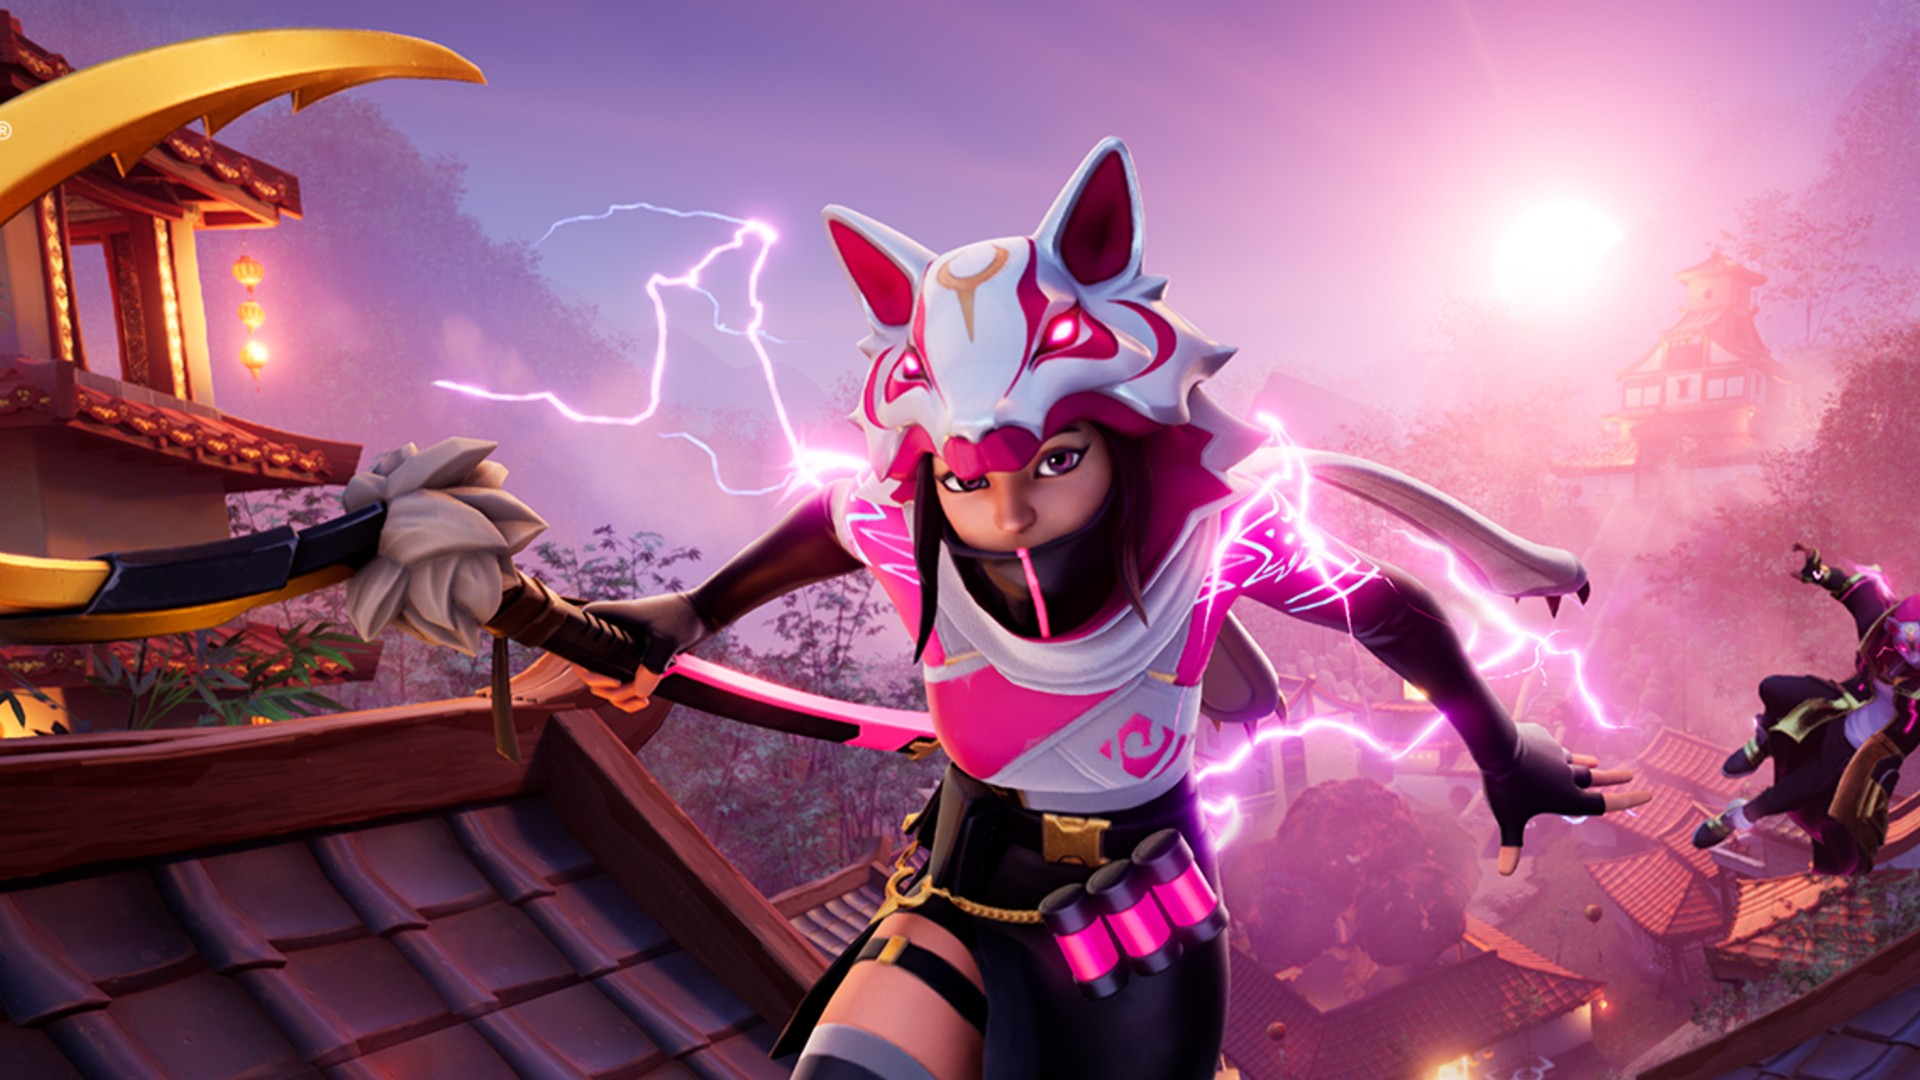 Fortnite 15.40 Patch Notes: Every new weapon, skins, bug fixes, and more